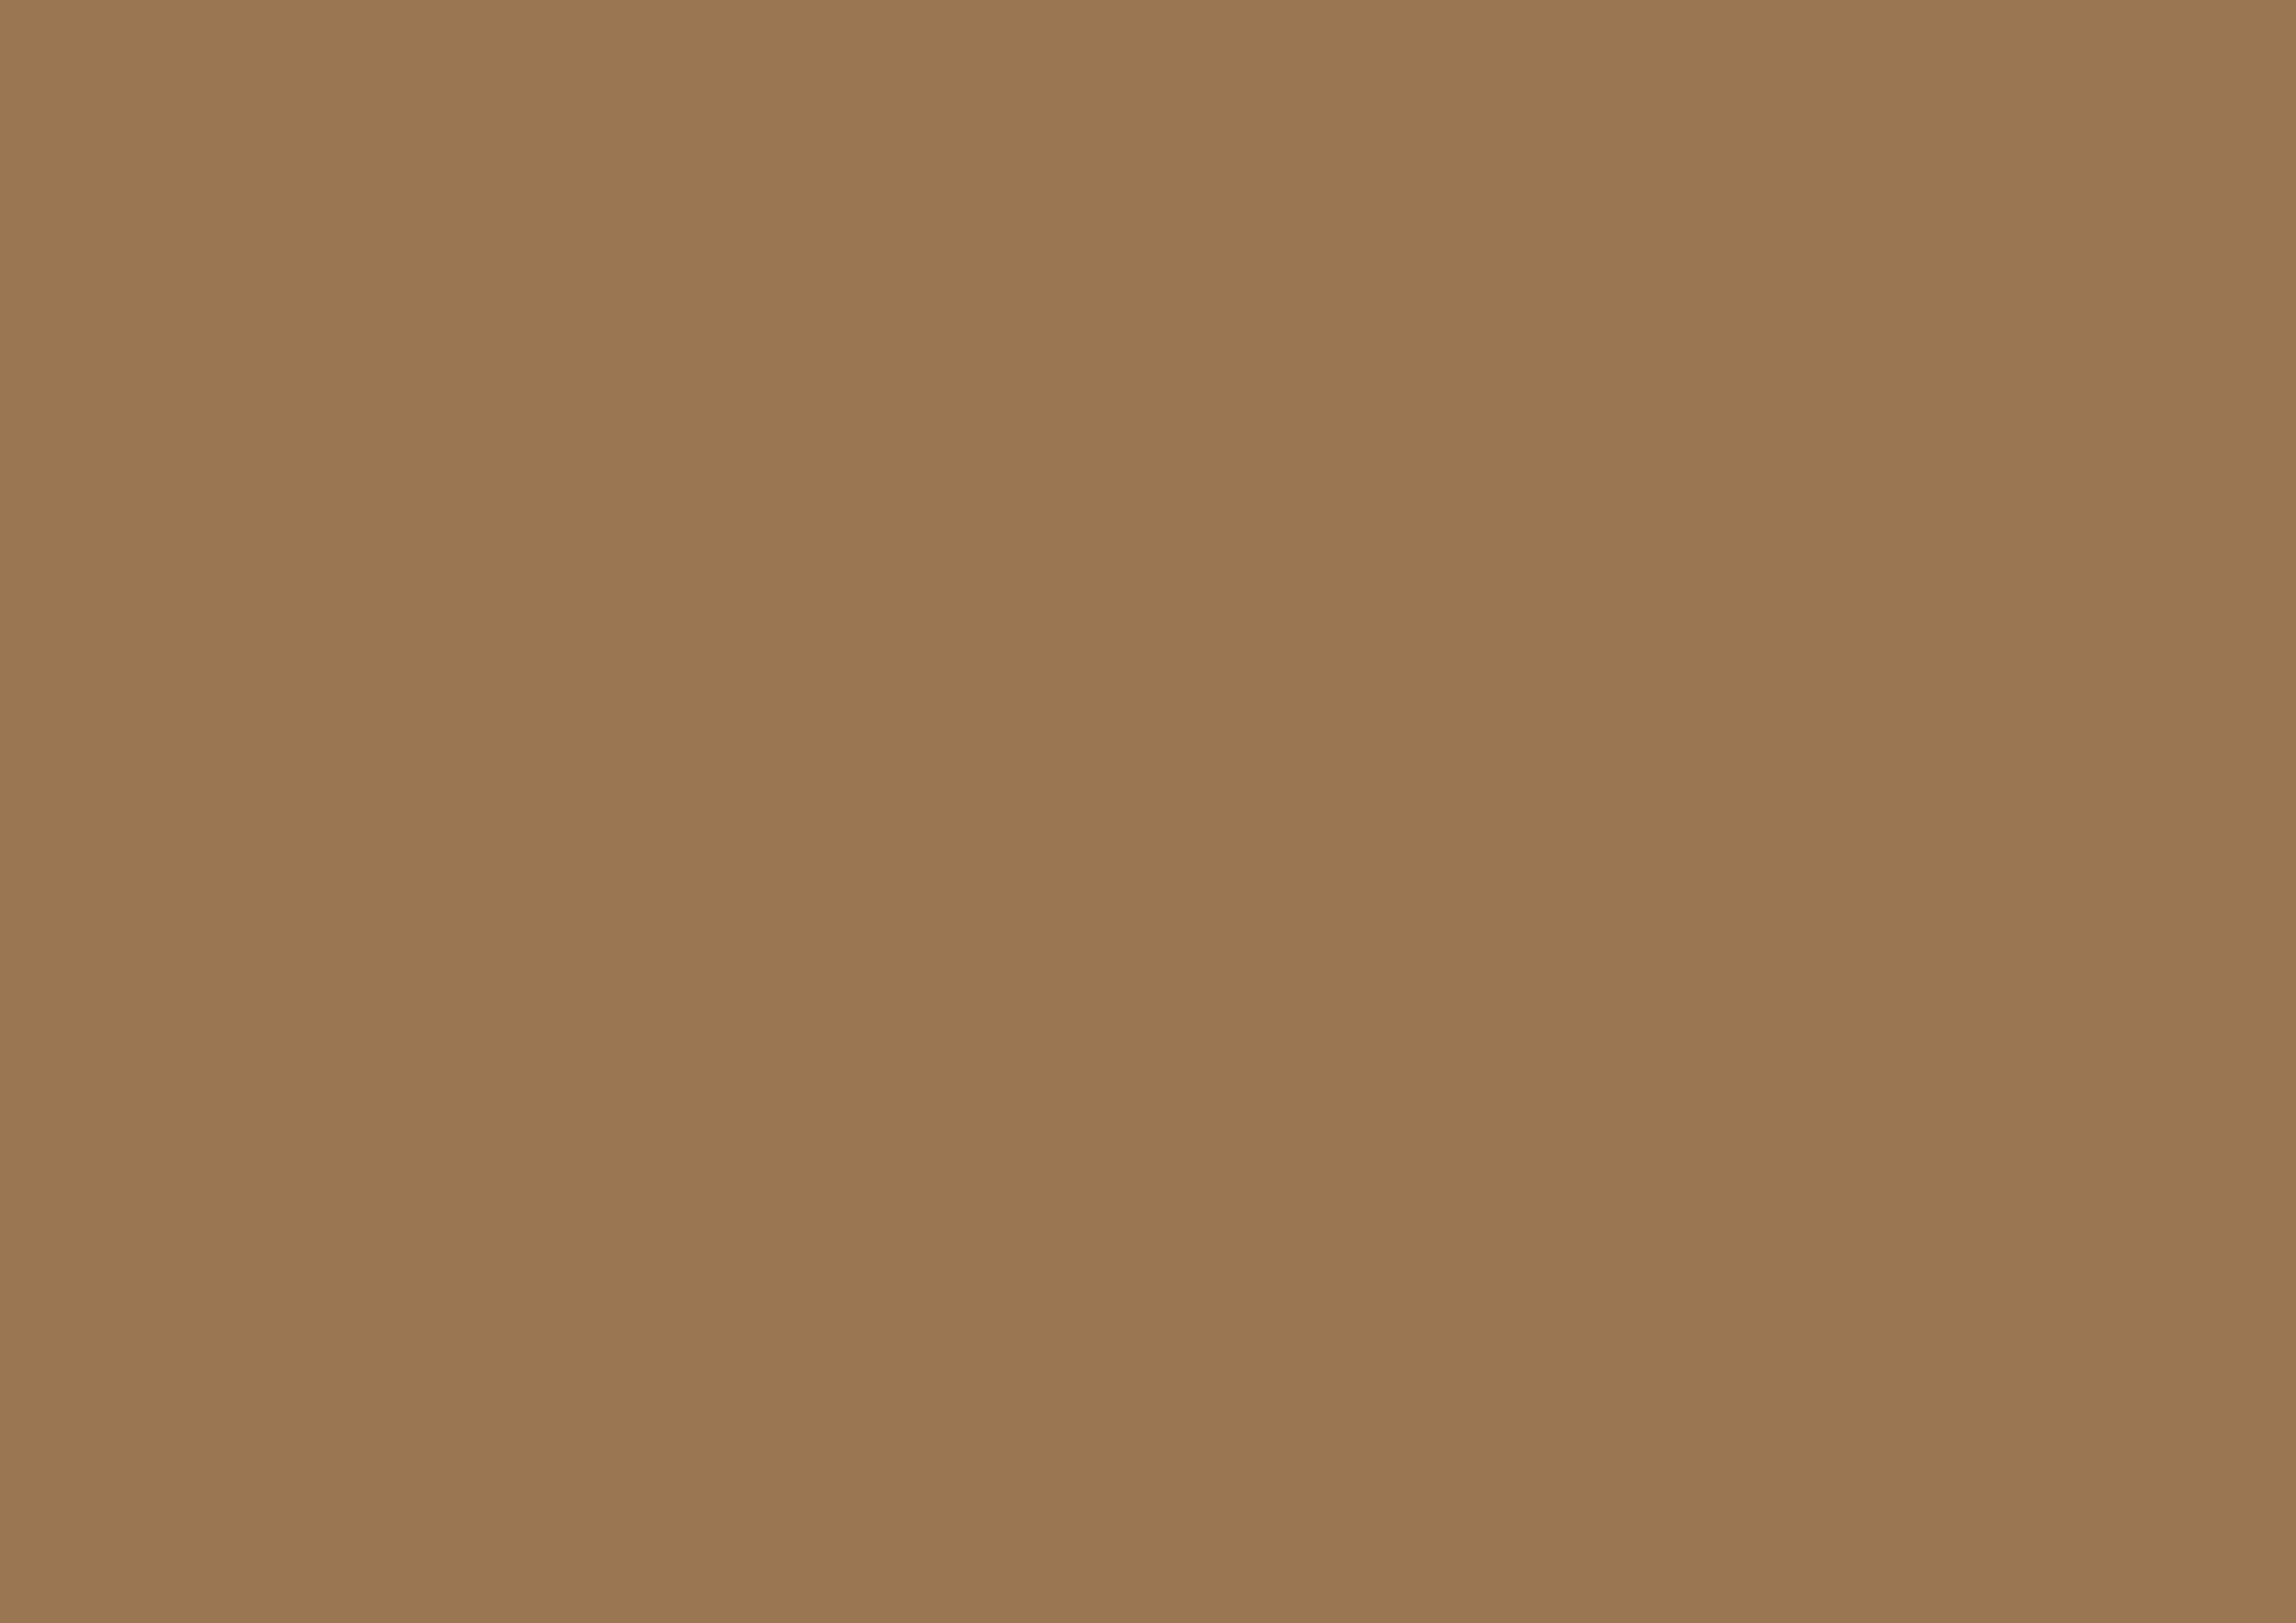 3508x2480 Dirt Solid Color Background